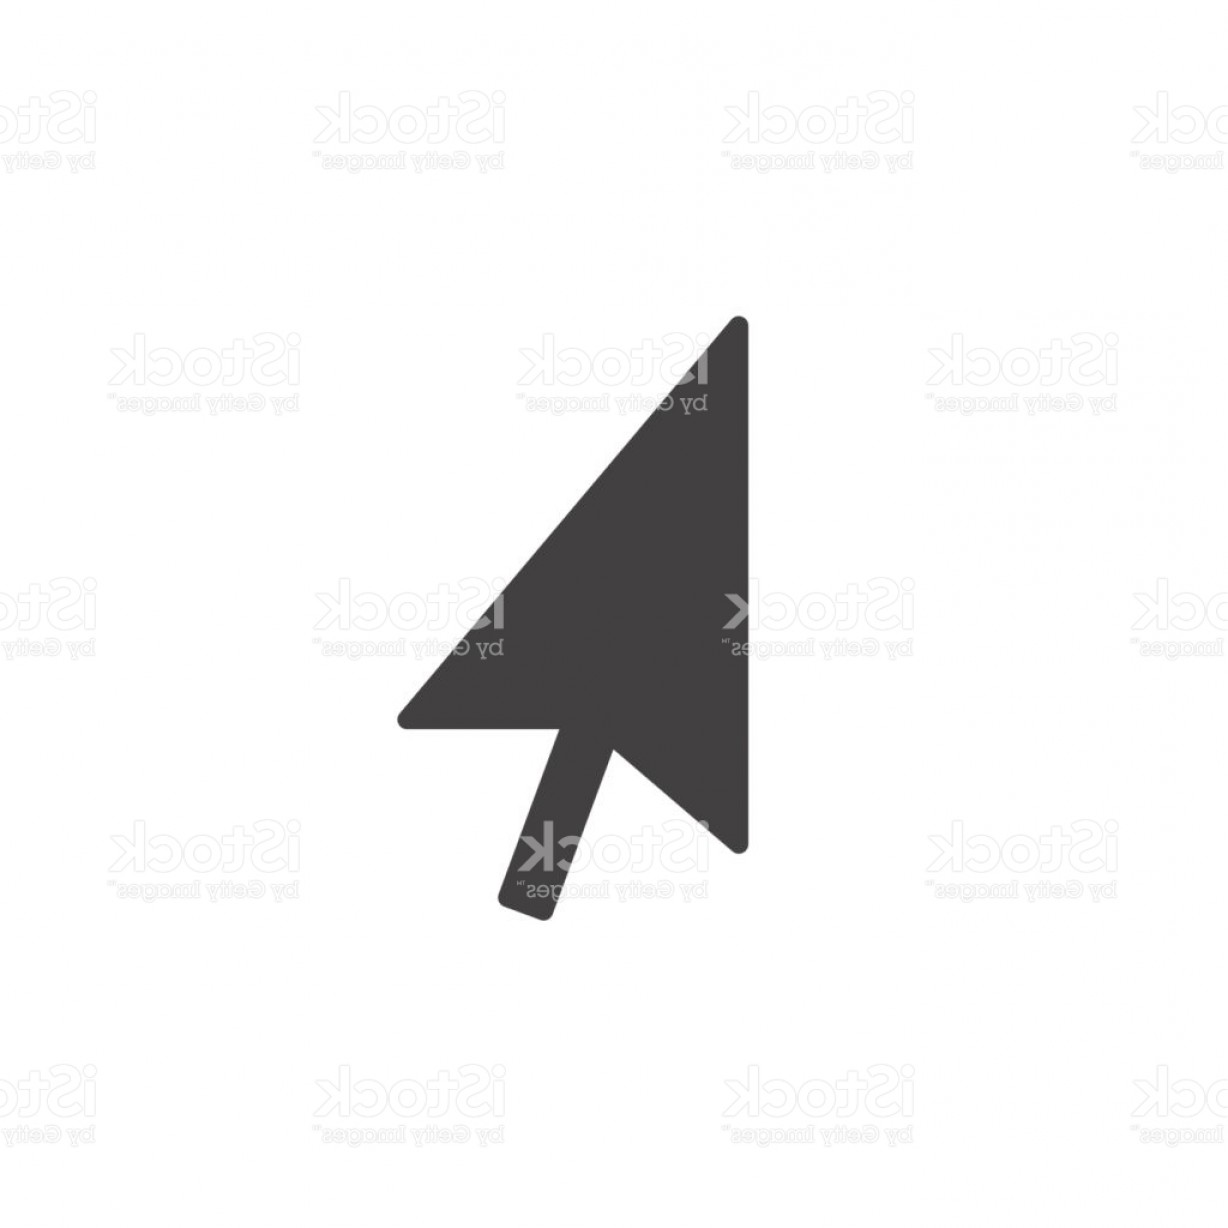 Computer Pointer Vector: Mouse Pointer Icon Vector Solid Logo Illustration Pictogram Isolated On White Gm